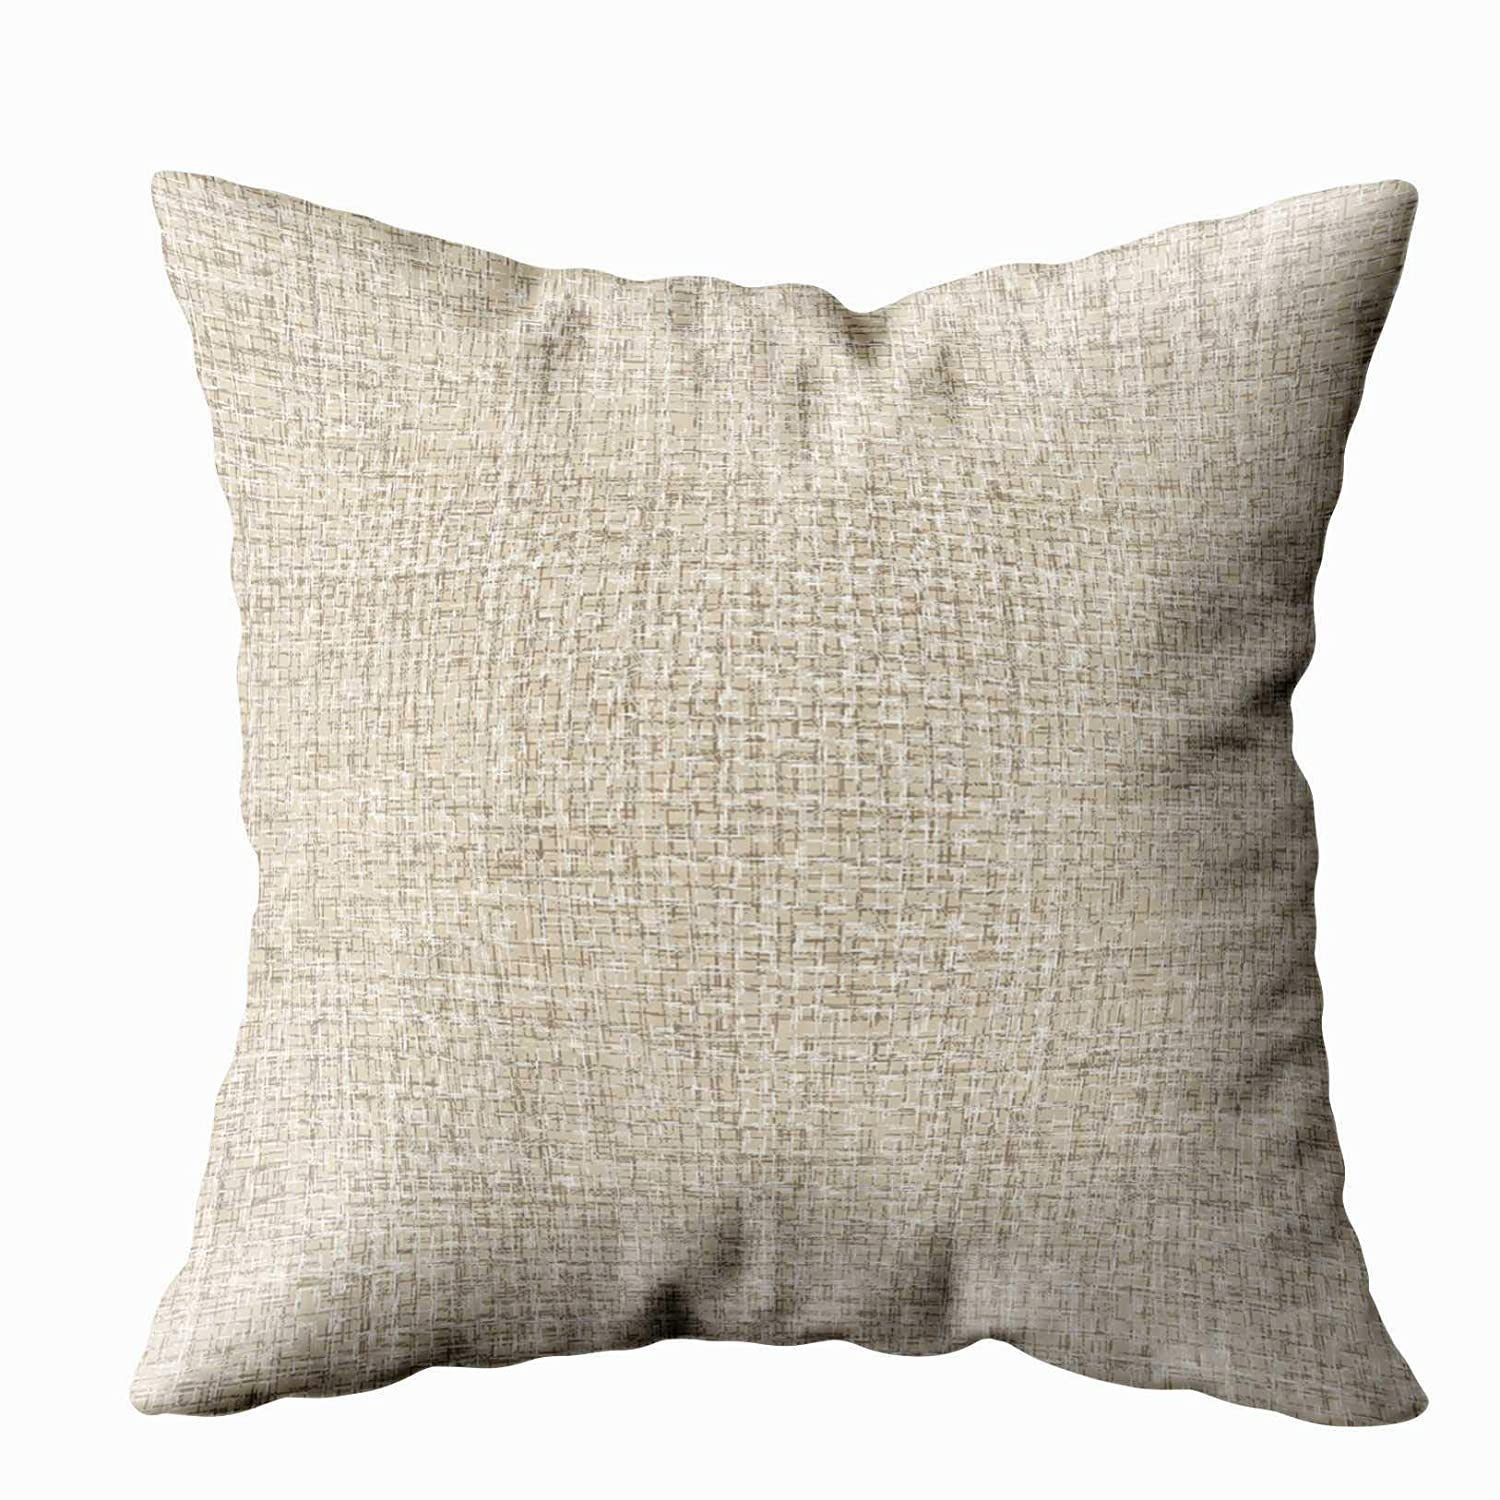 Musesh Rustic Cabin Lodge earthtone Colors Cushions Case Throw Pillow Cover for Sofa Home Decorative Pillowslip Gift Ideas Household Pillowcase Zippered Pillow Covers 20X20Inch